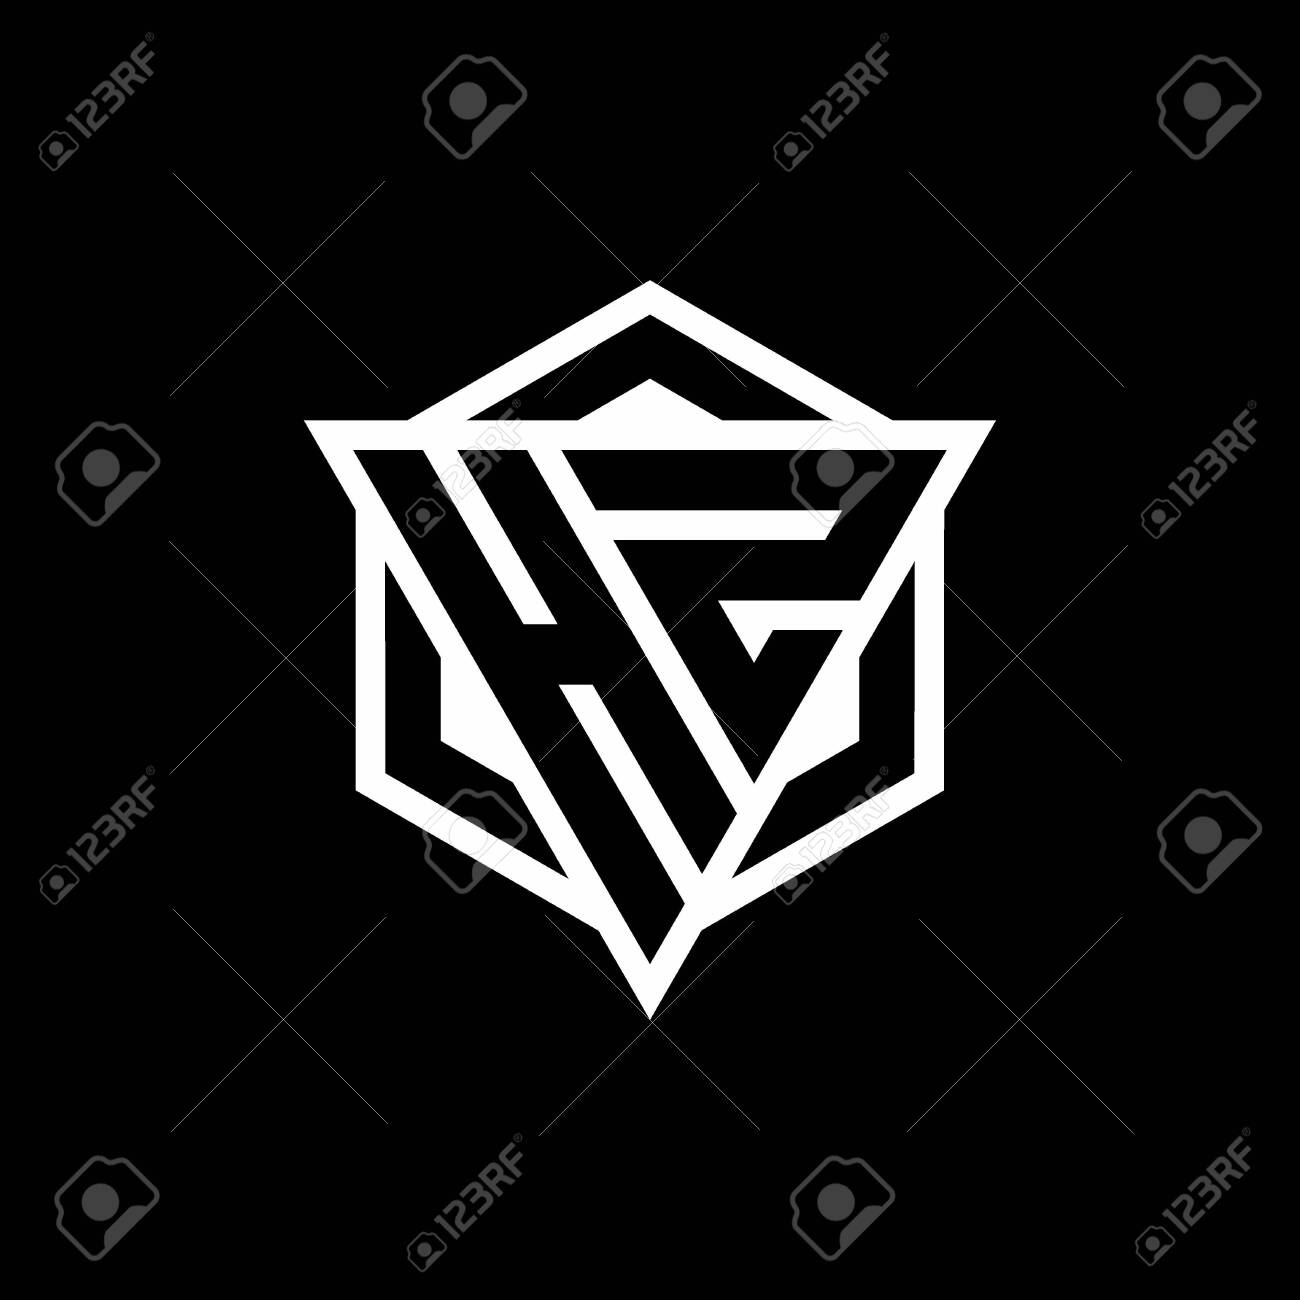 HZ monogram with triangle and hexagon shape combination isolated on black and white colors - 143746860